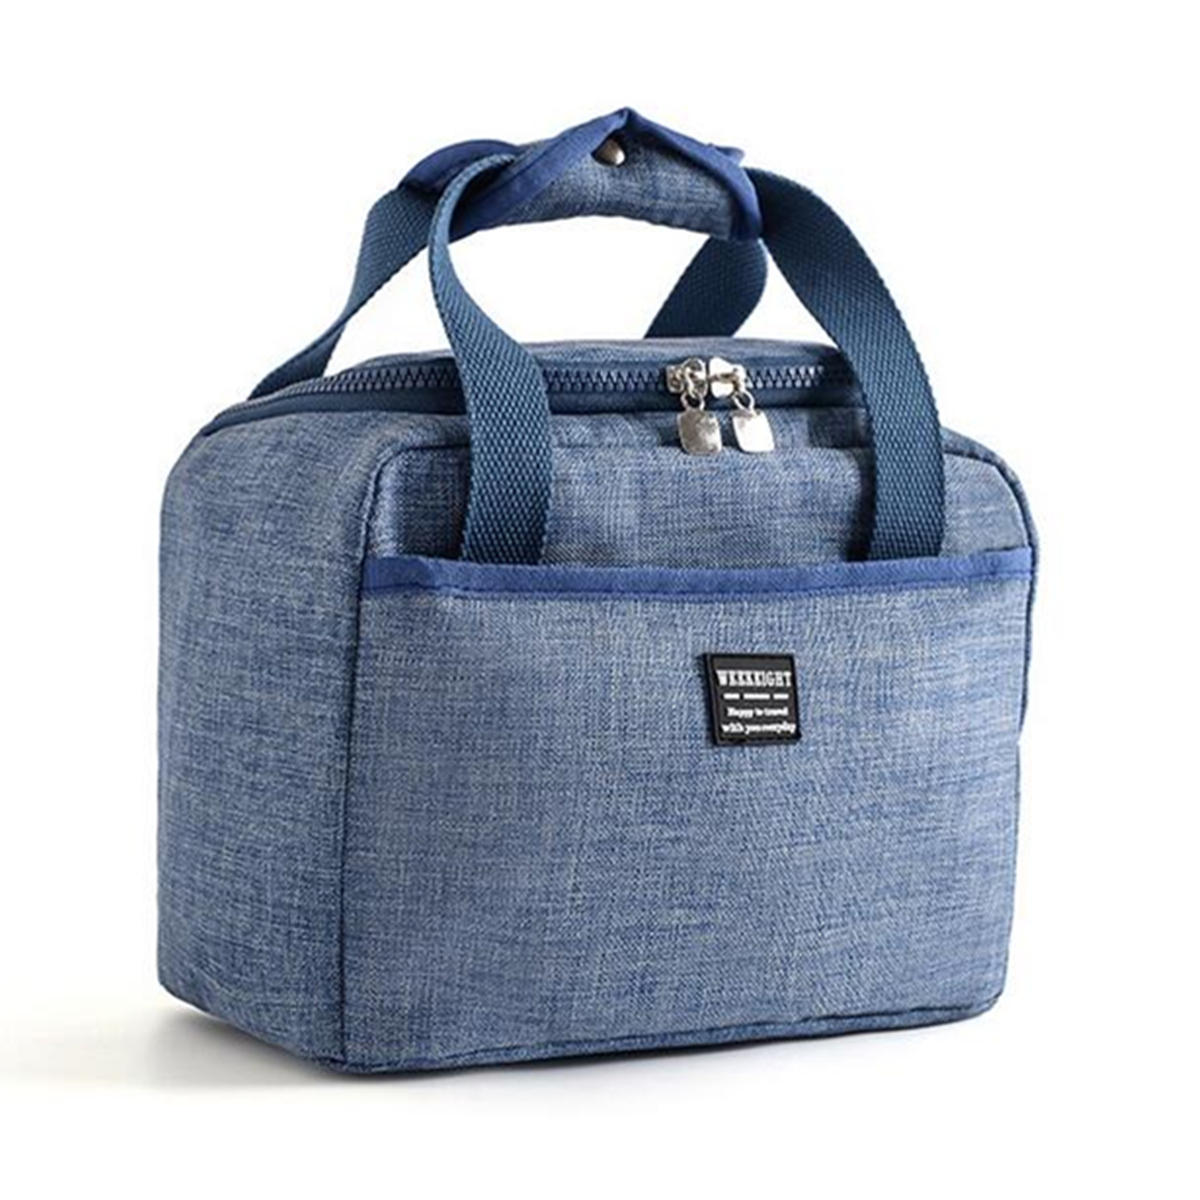 Insulated Lunch Bag Soft Cooler Waterproof Thermal Work School Picnic Bento Storage Carry Case